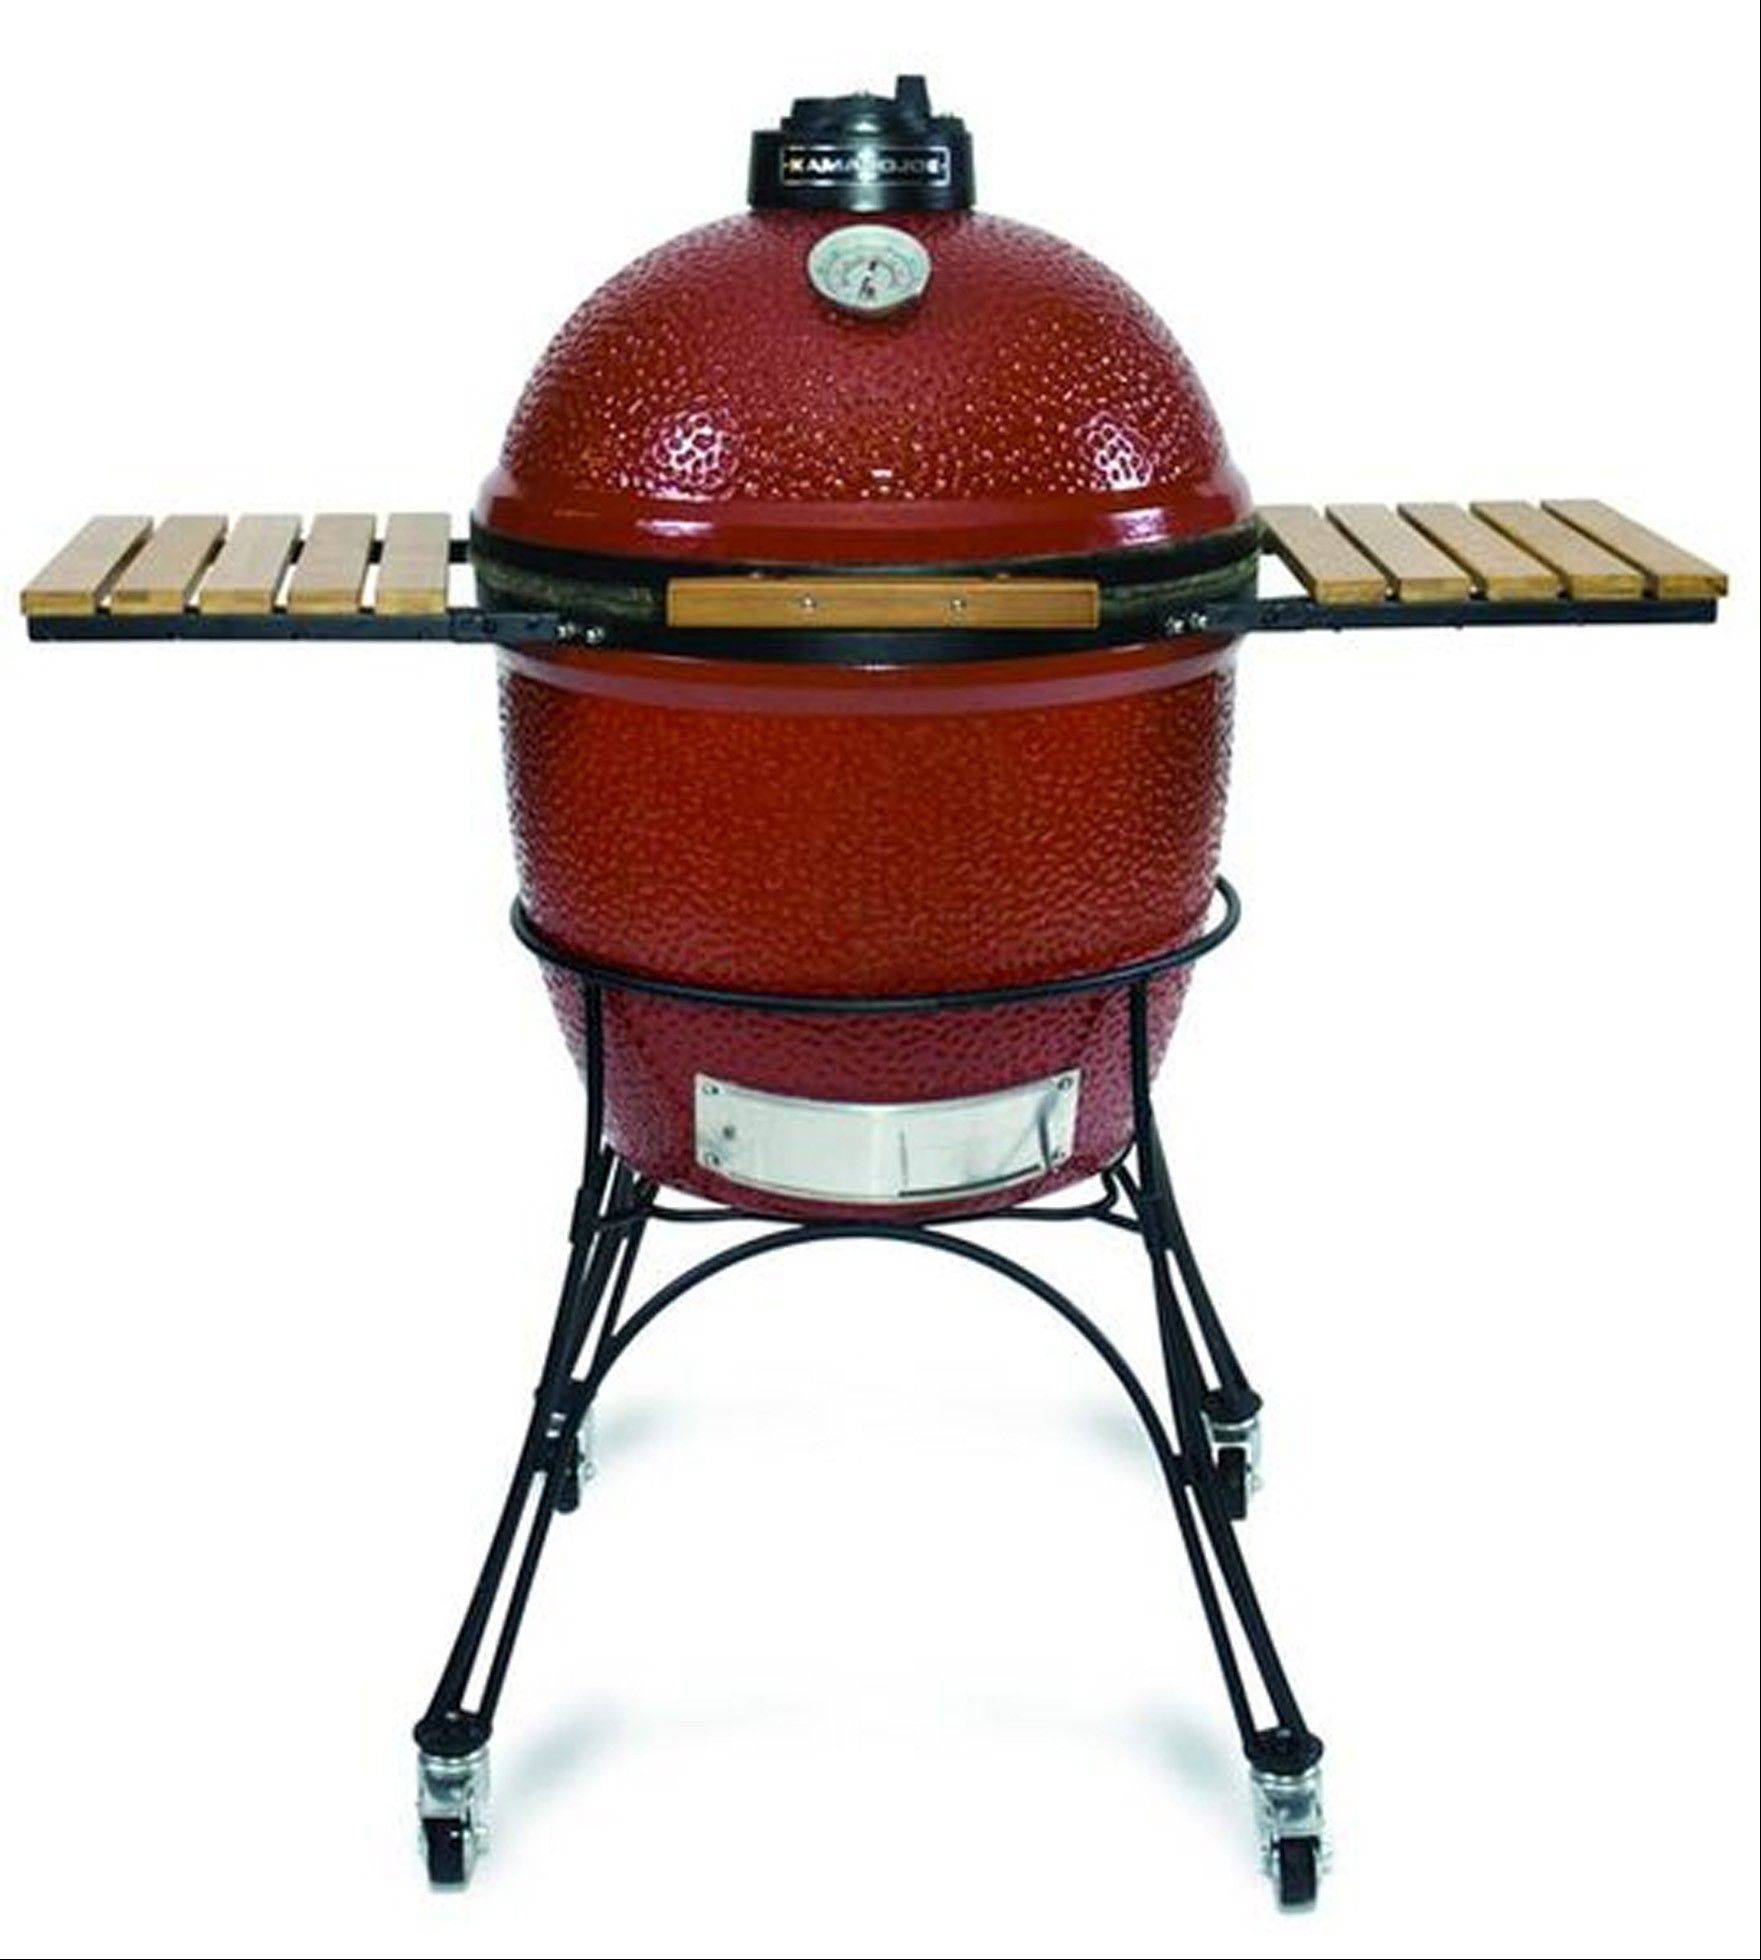 The Kamado Joe offers a new way to cook outdoors.